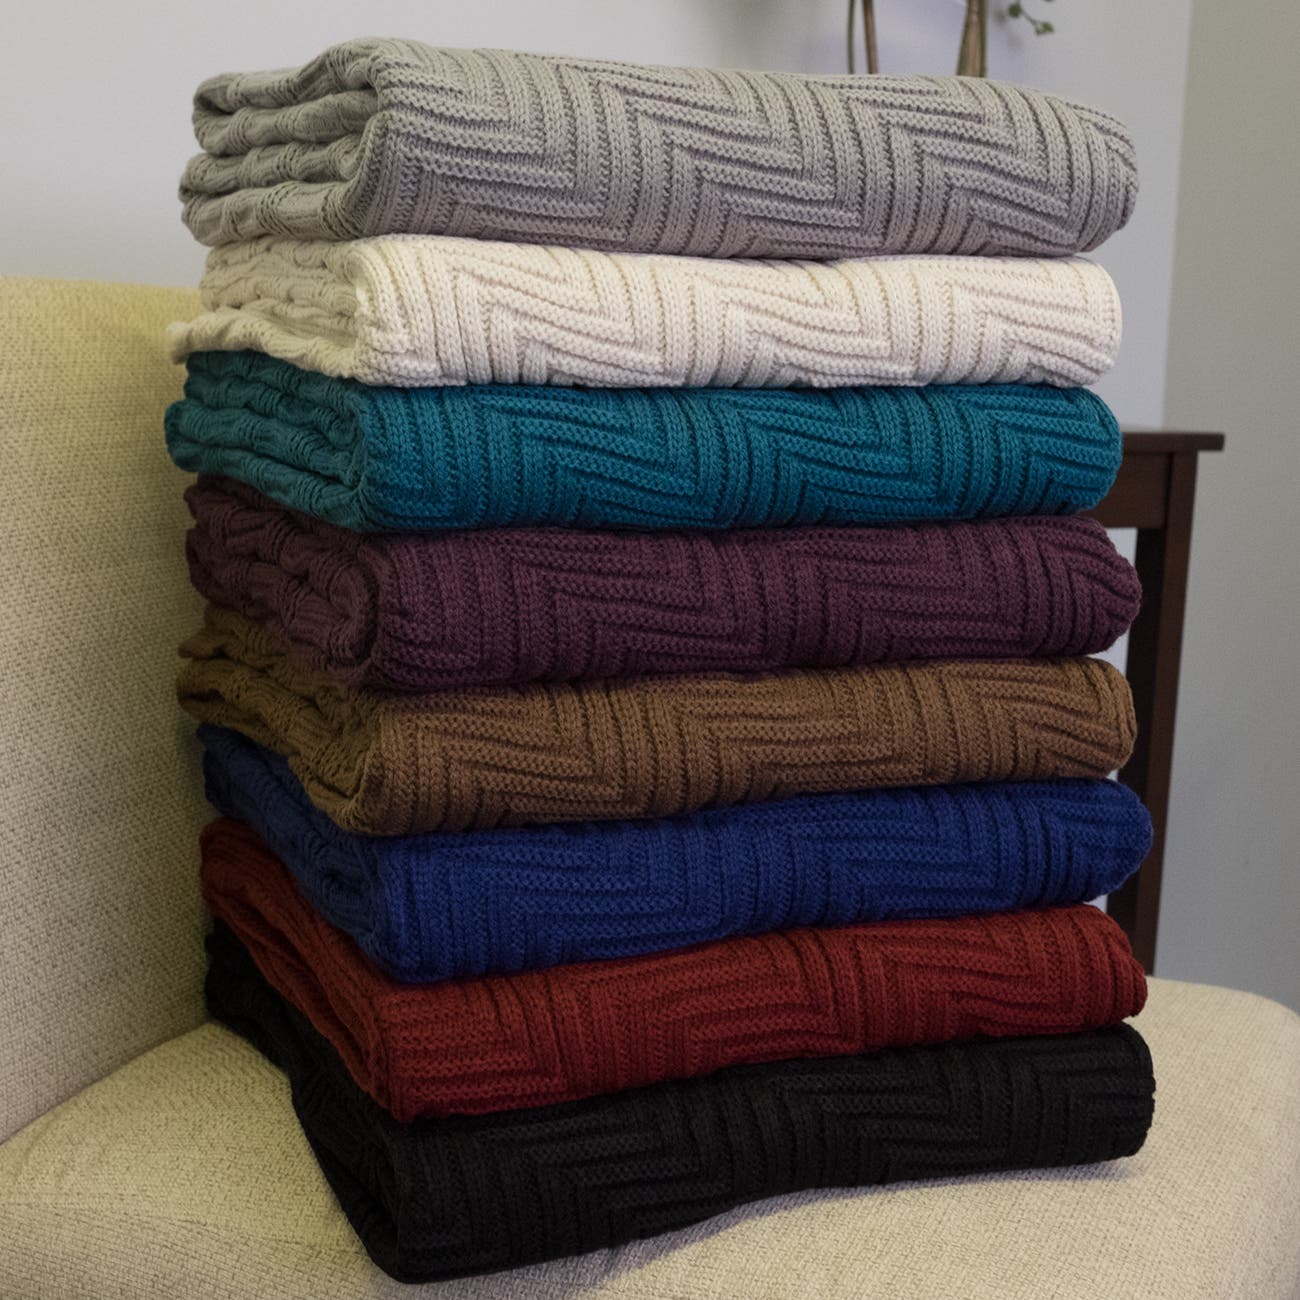 Throw blankets for less for Bathroom 94 percent